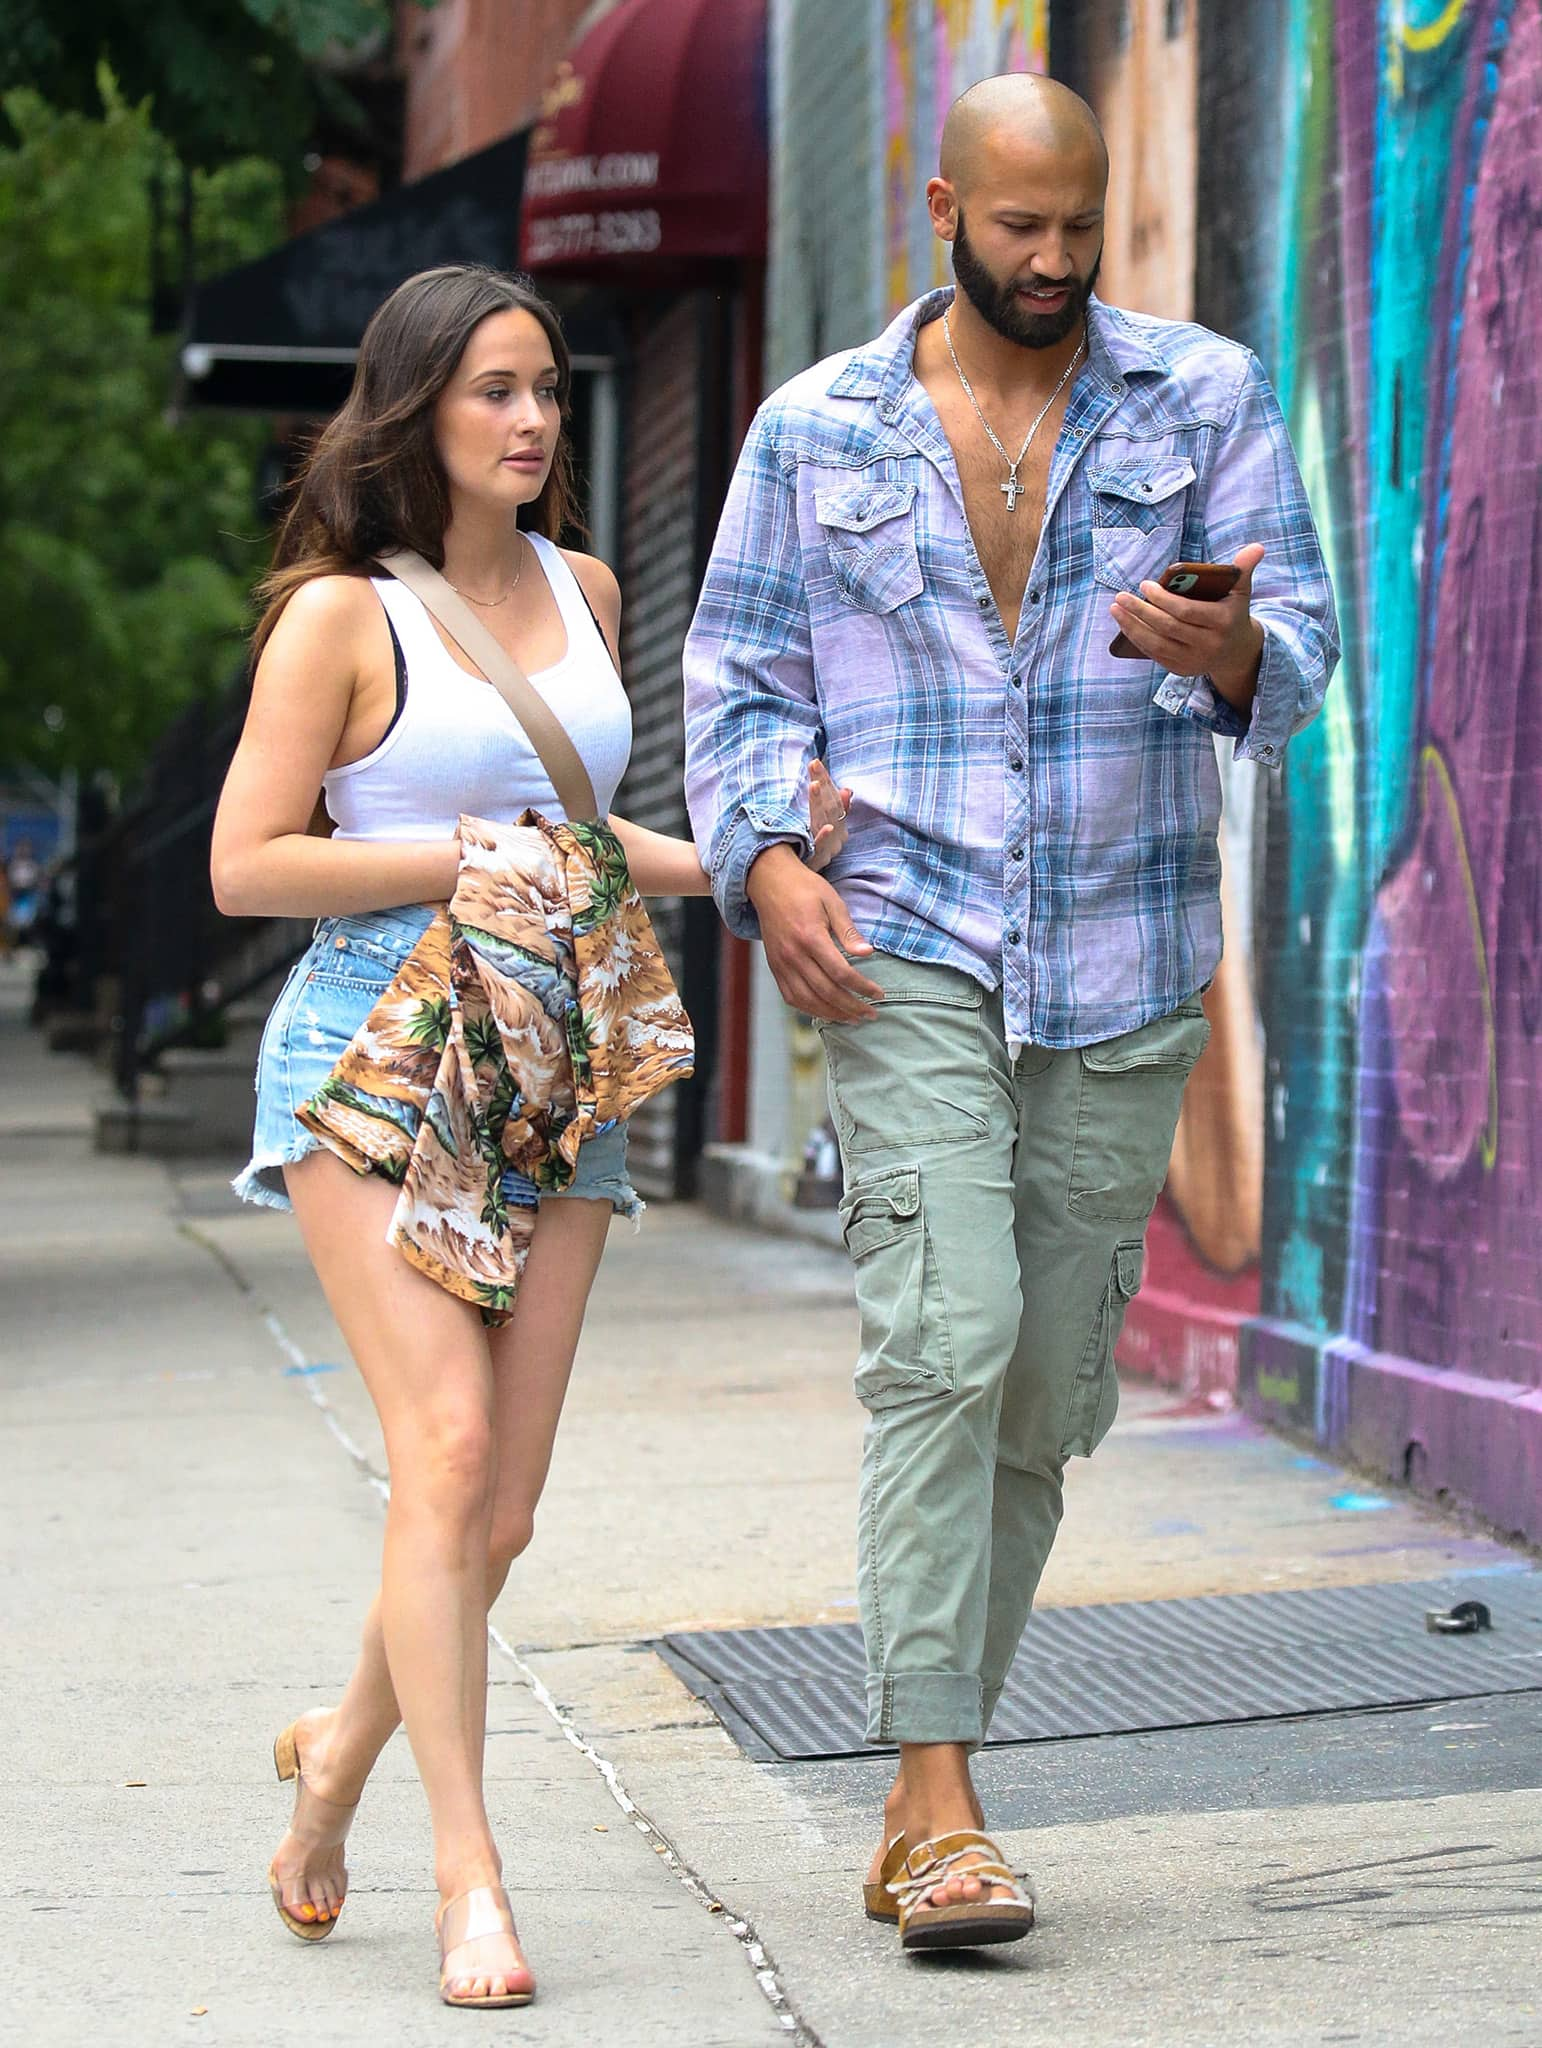 Kacey Musgraves looks hot in white tank top and daisy dukes on a dinner date with Cole Schafer on June 18, 2021